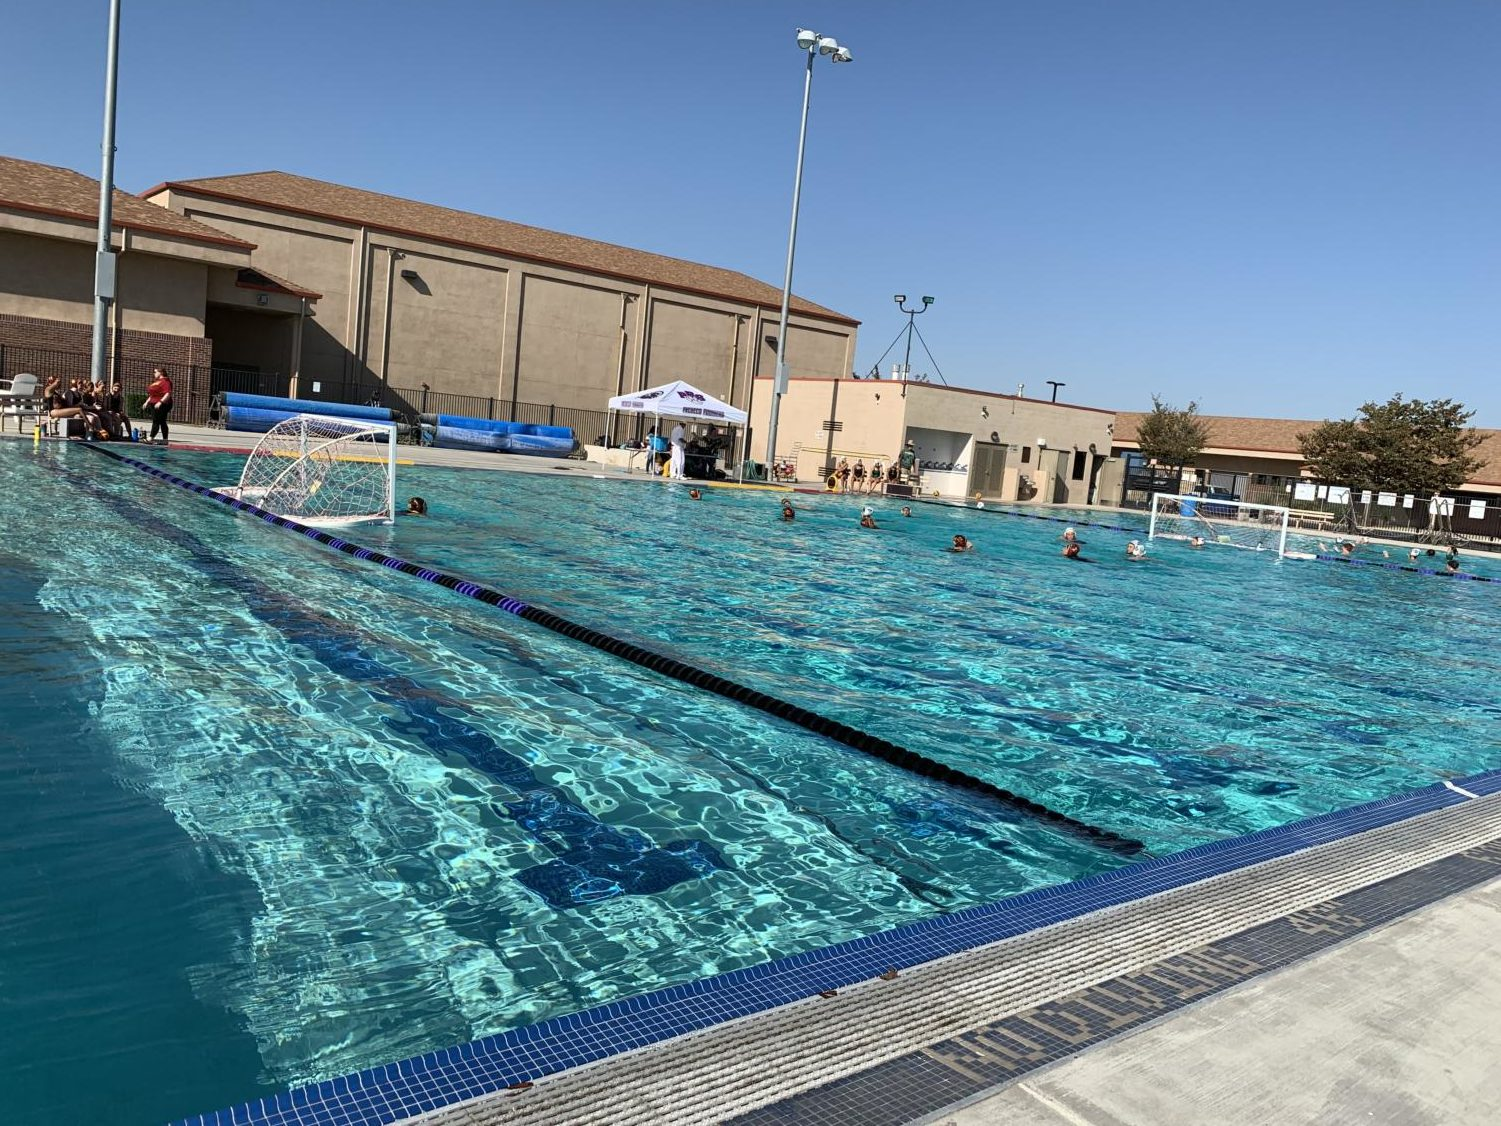 The water polo team is determined to be the best.